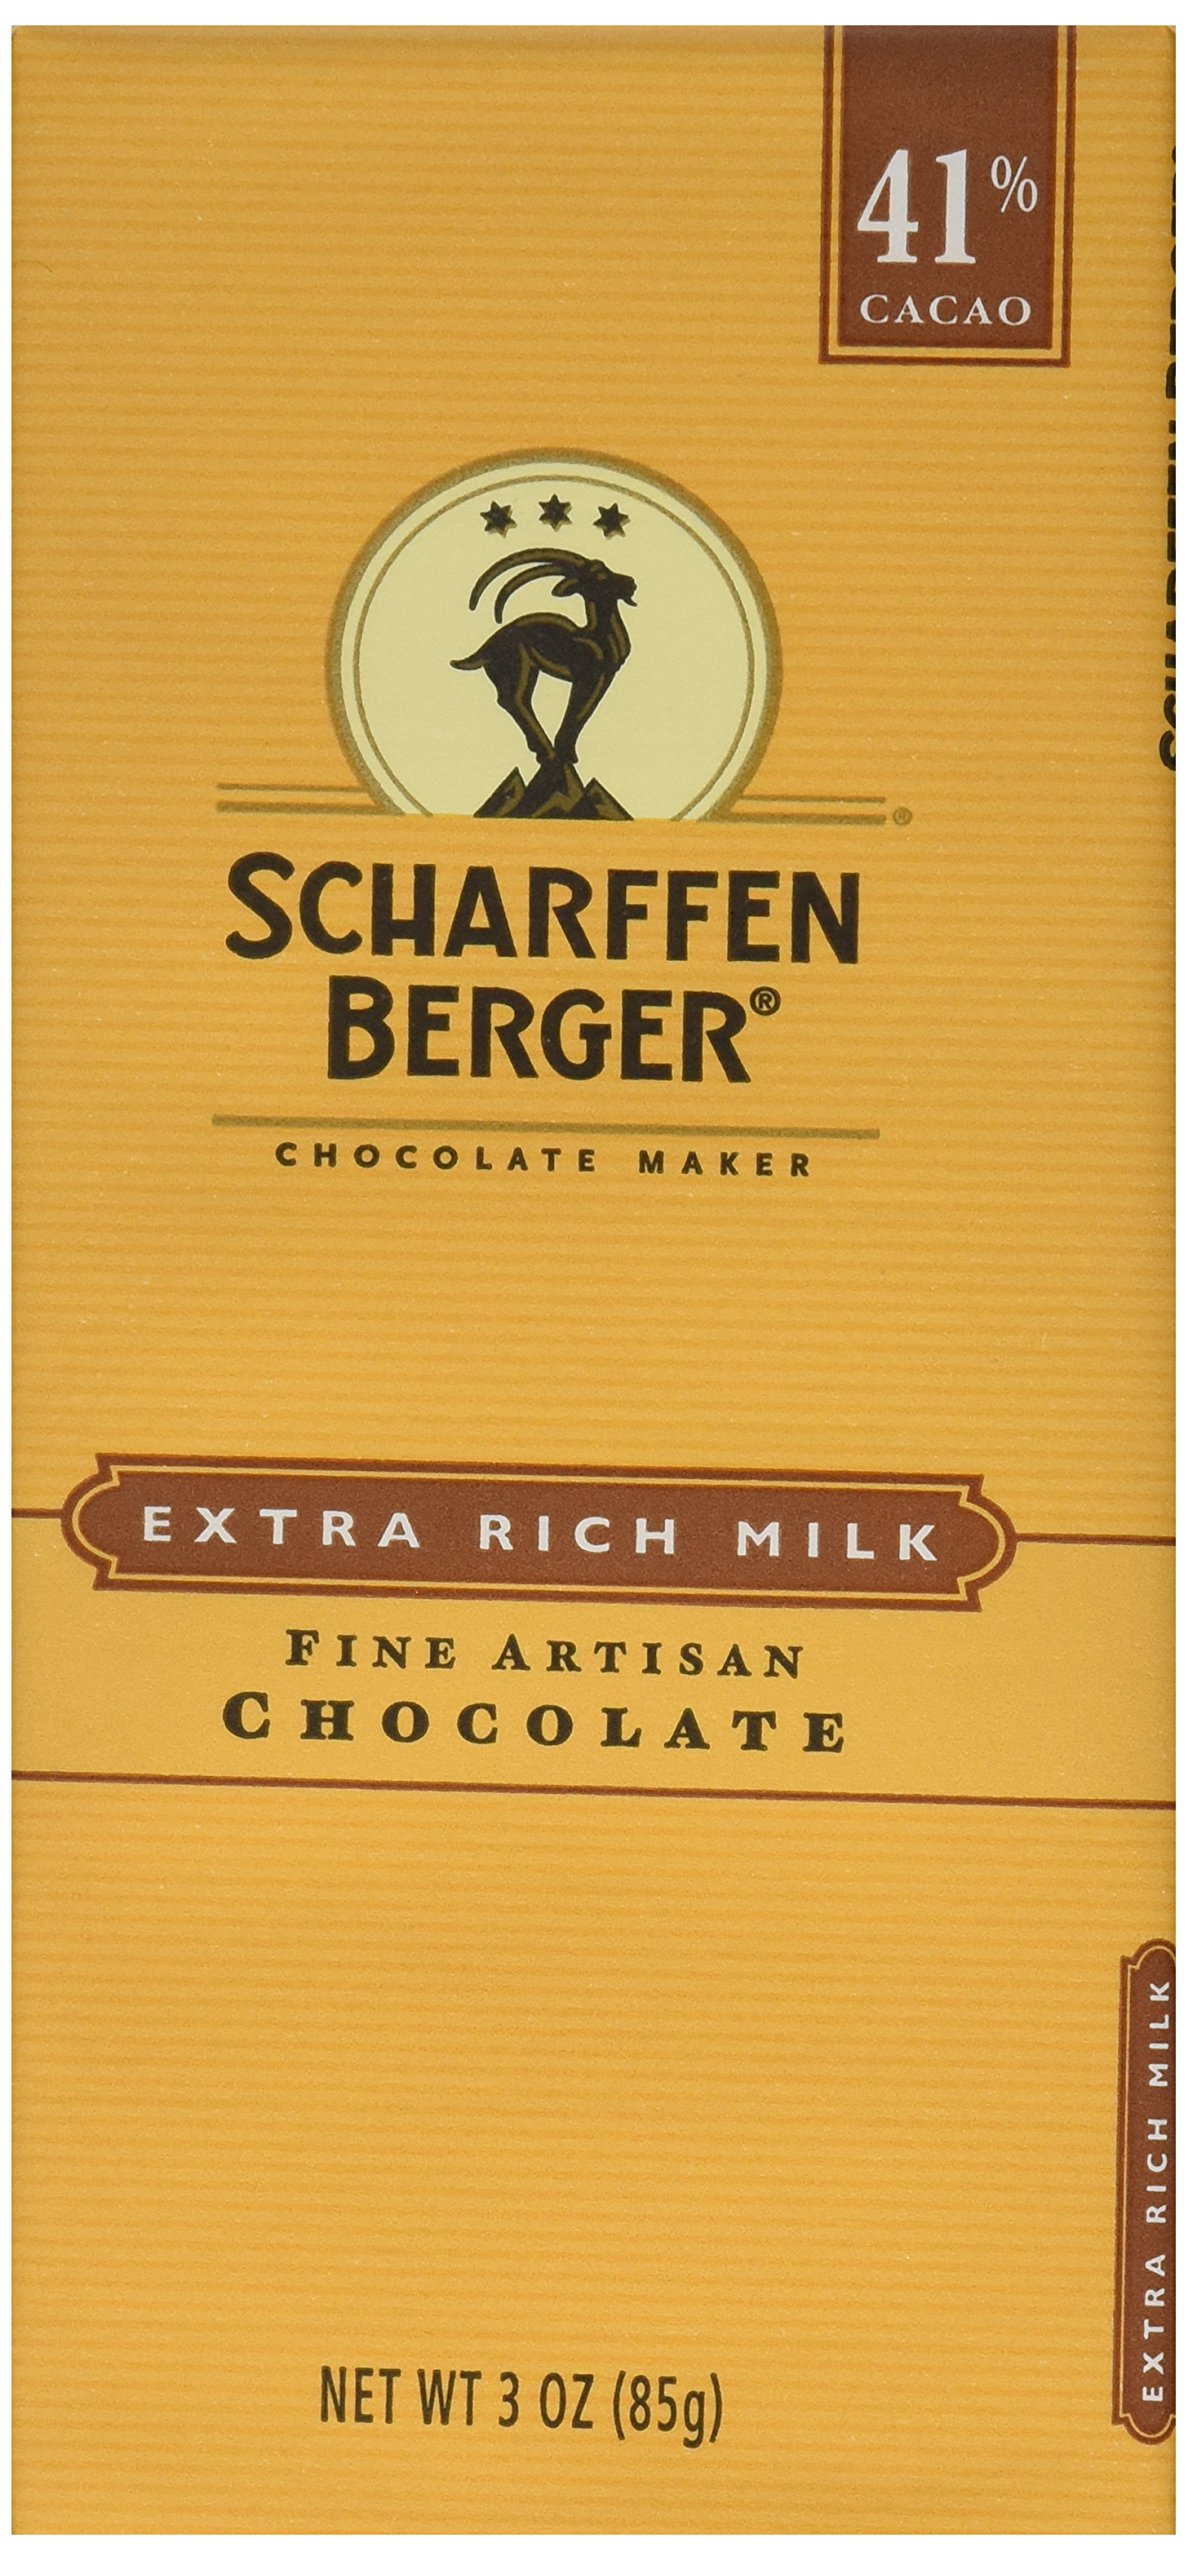 Scharffen Berger, Milk Chocolate Bar 41%, 3 oz by Scharffen Berger